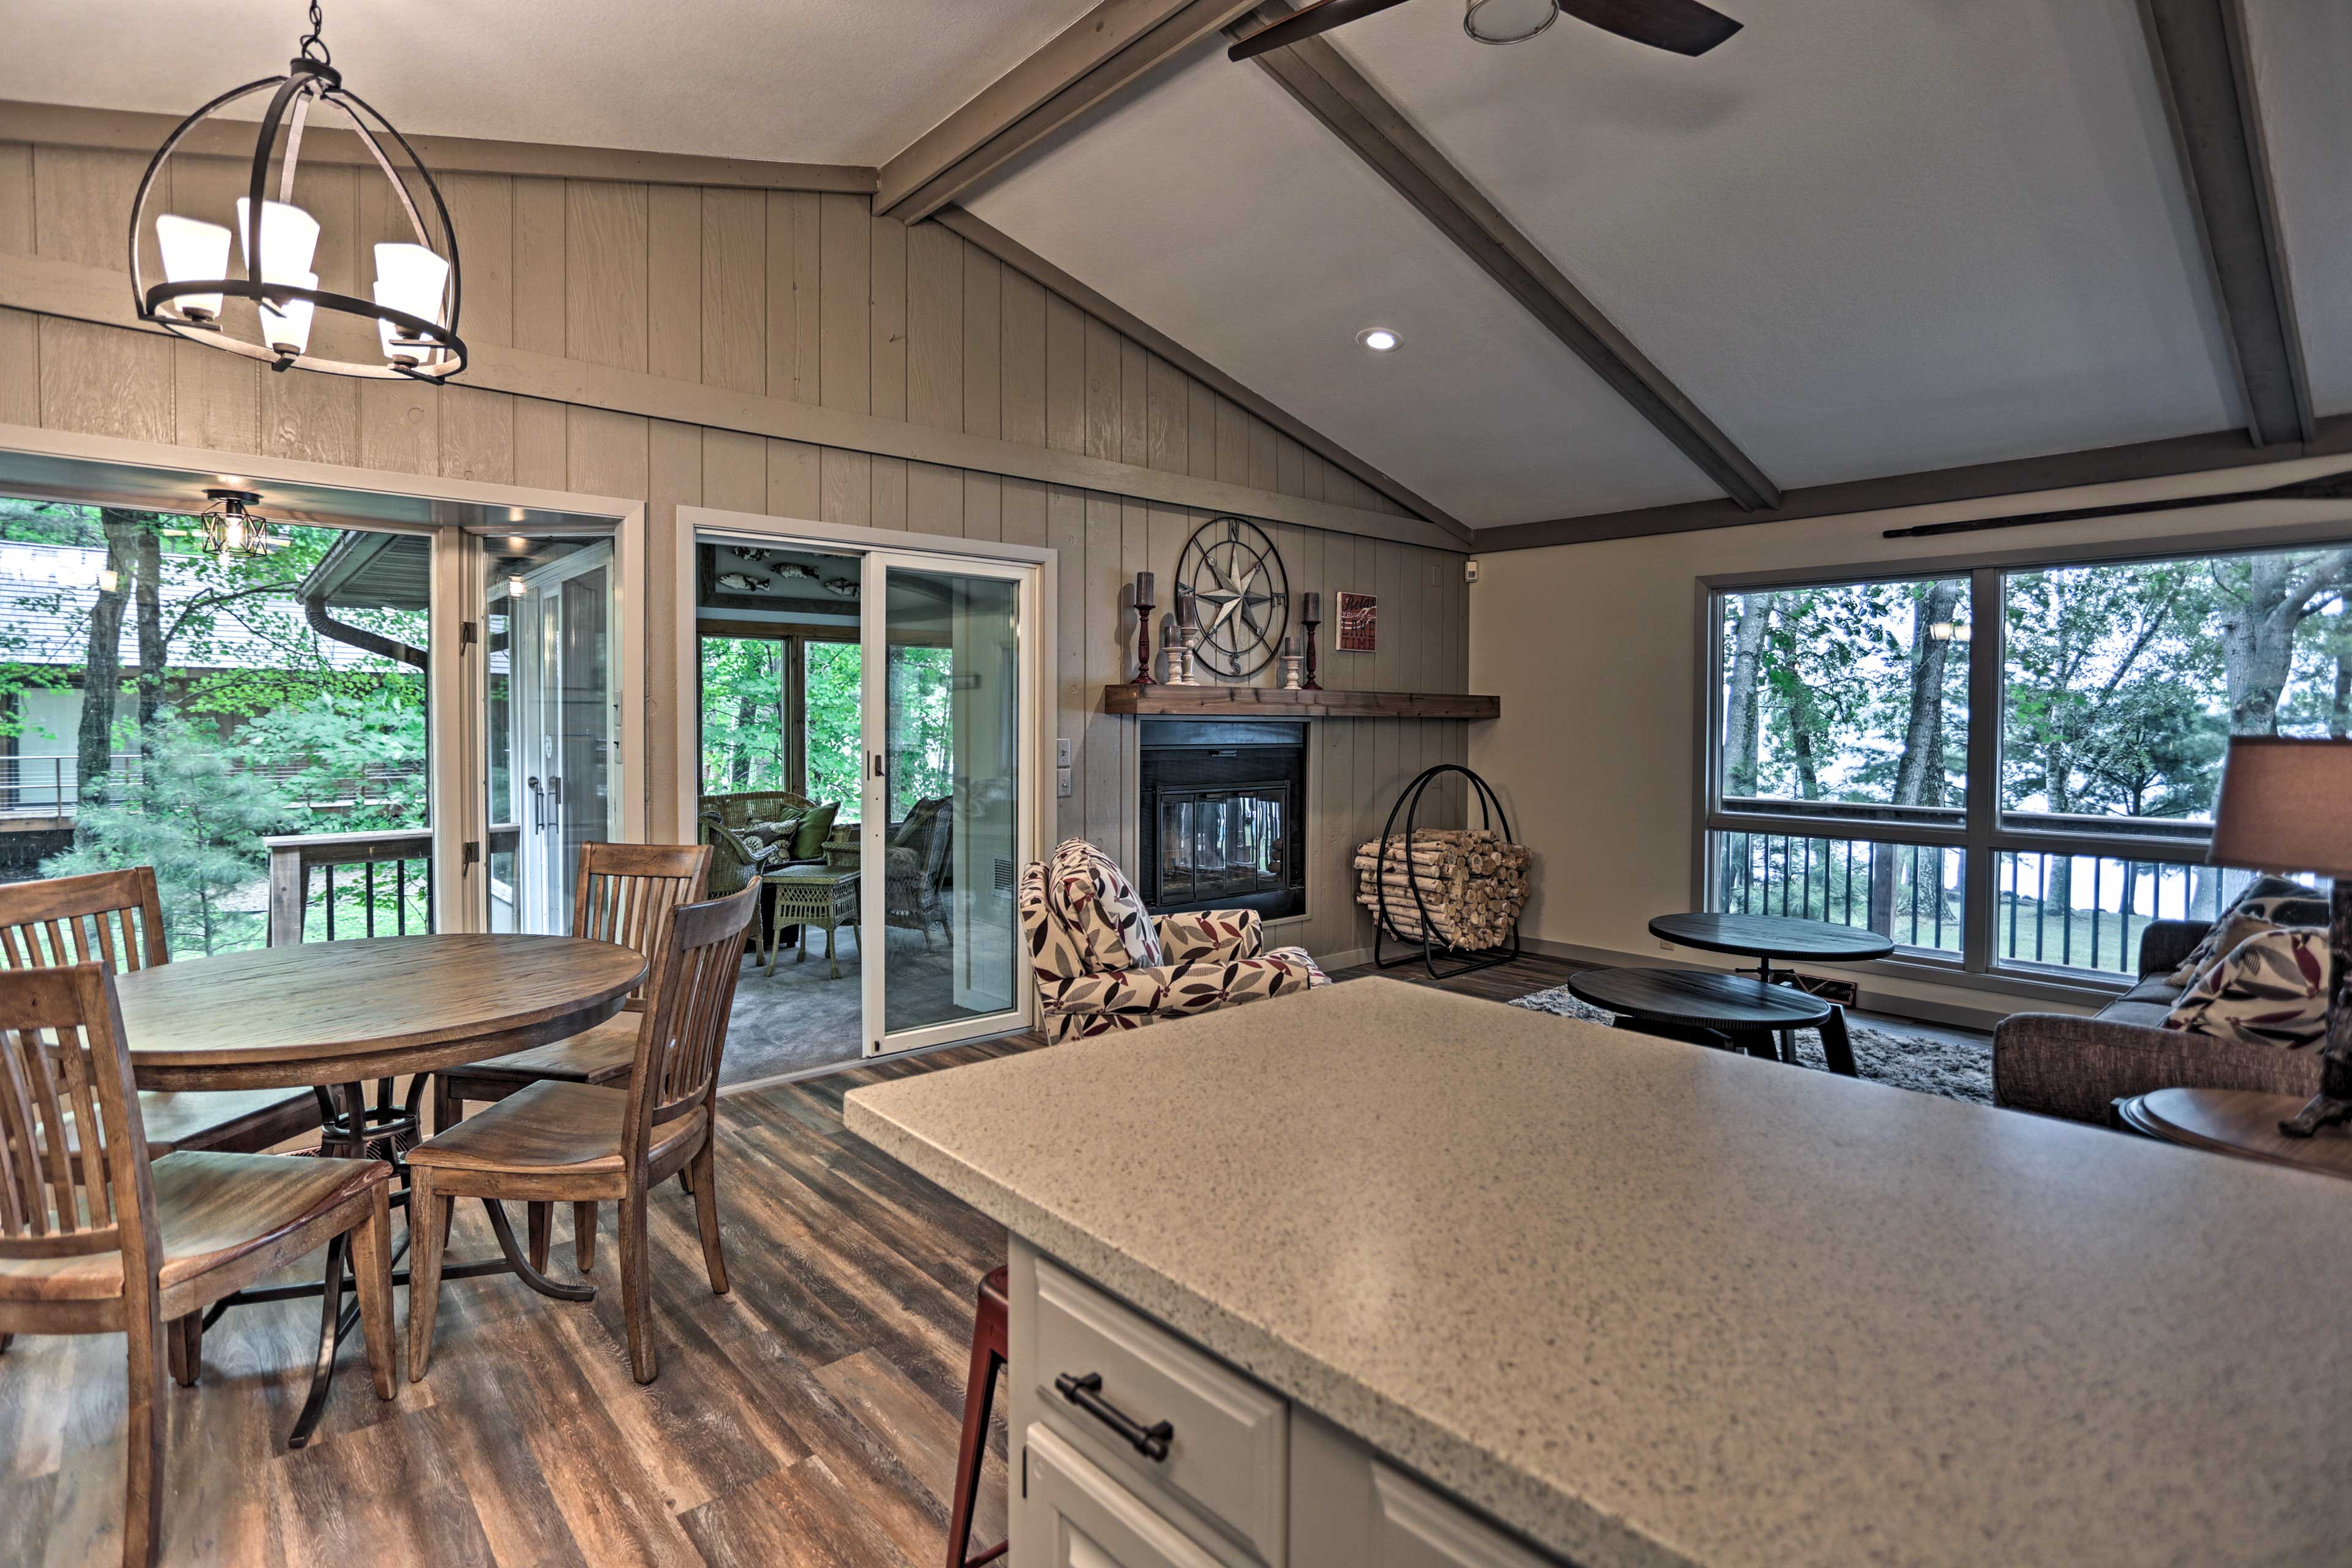 Numerous windows and sliding glass doors open to peaceful views of nature.